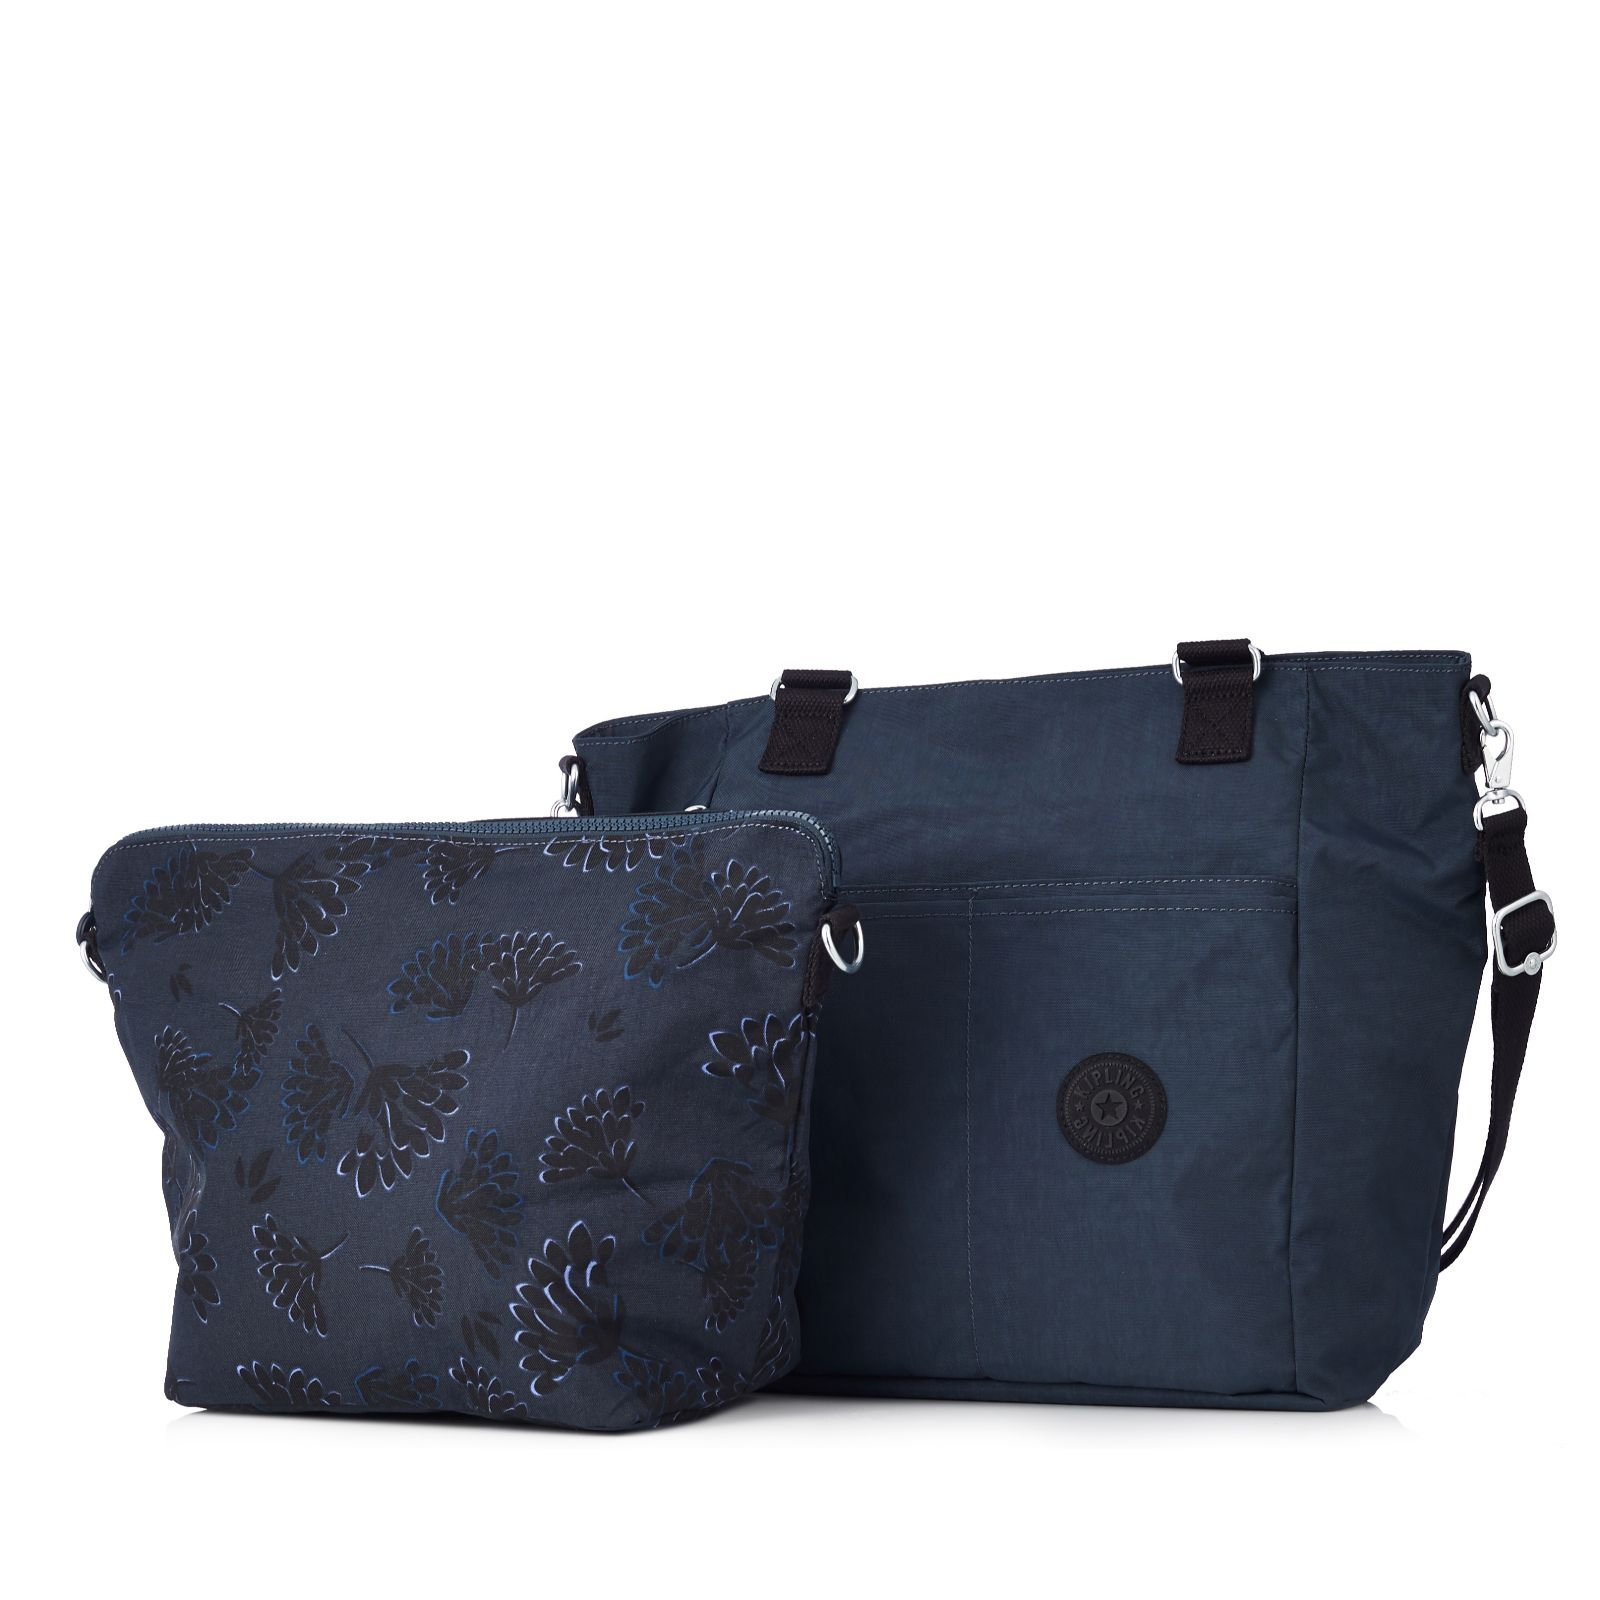 377f5834a182ea ... Kipling Audria Large 2 in 1 Tote Bag with Shoulder Strap - Q to buy  b8073 ...